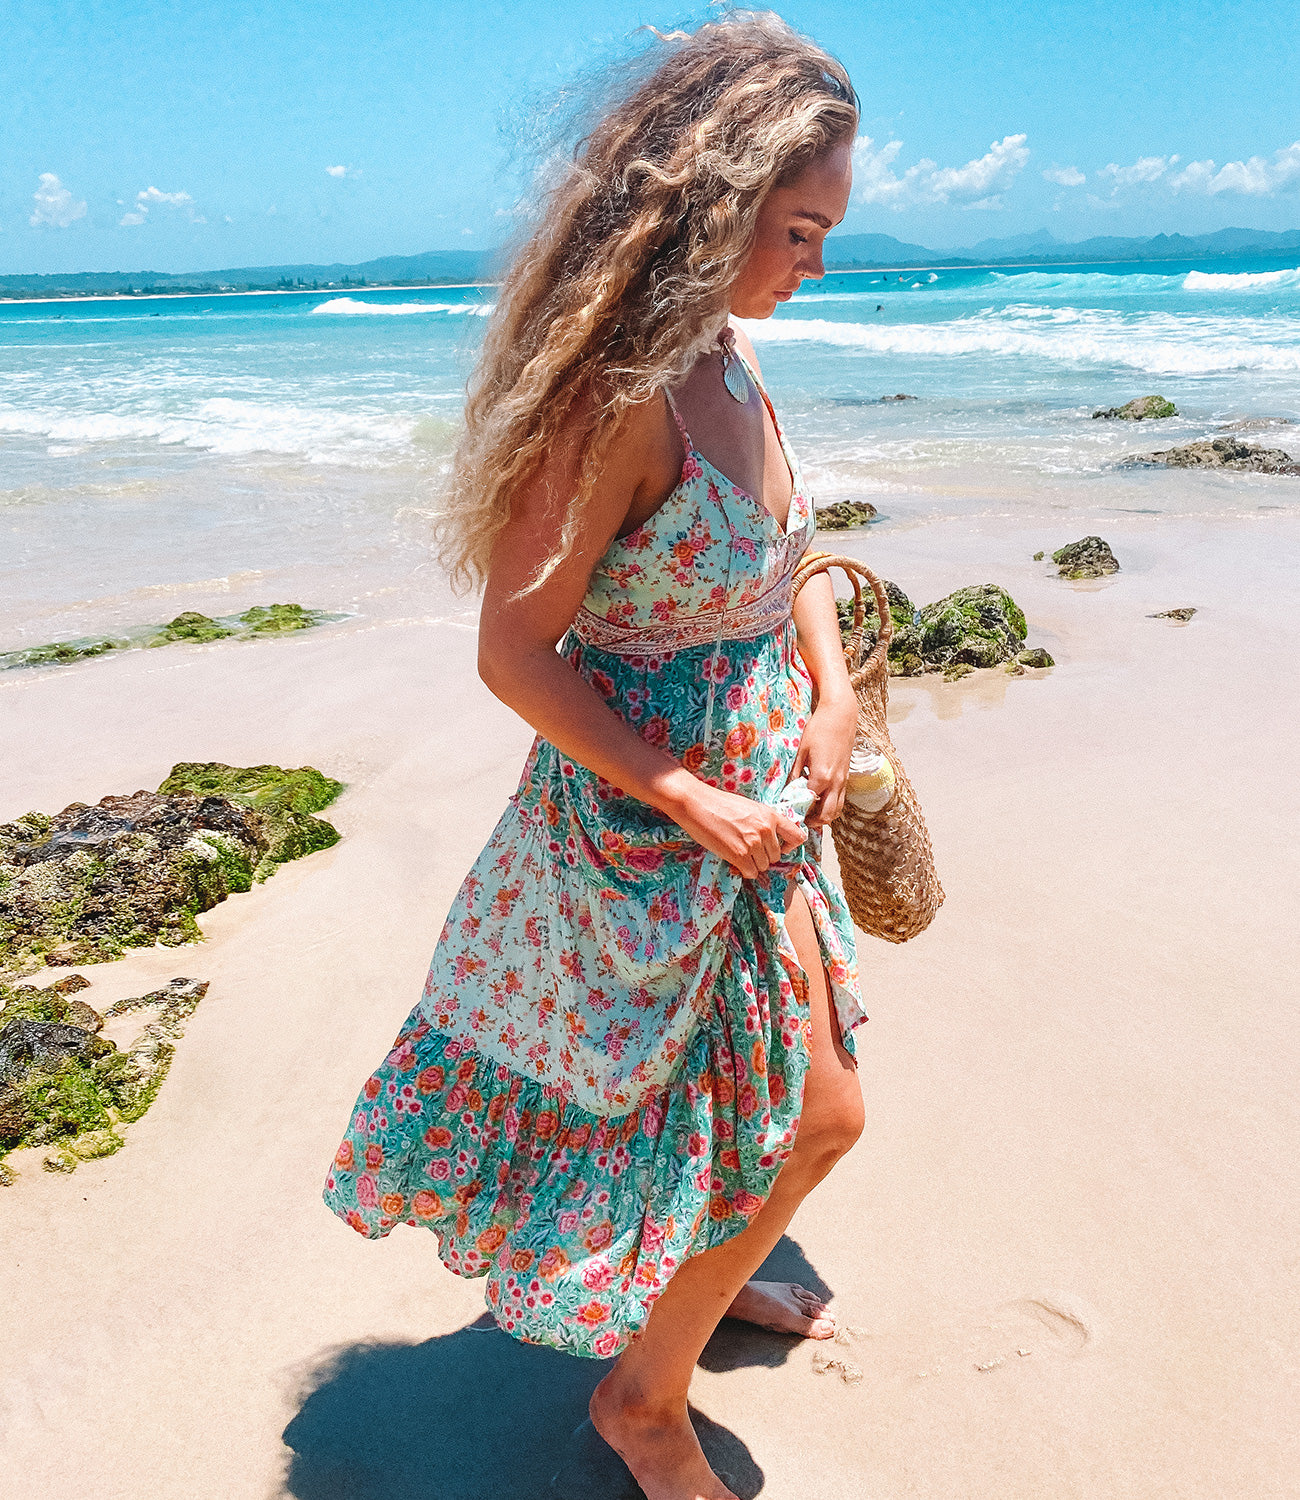 Visiting The Pass Byron Bay with Orchid wearing the new sustainable fashion collection